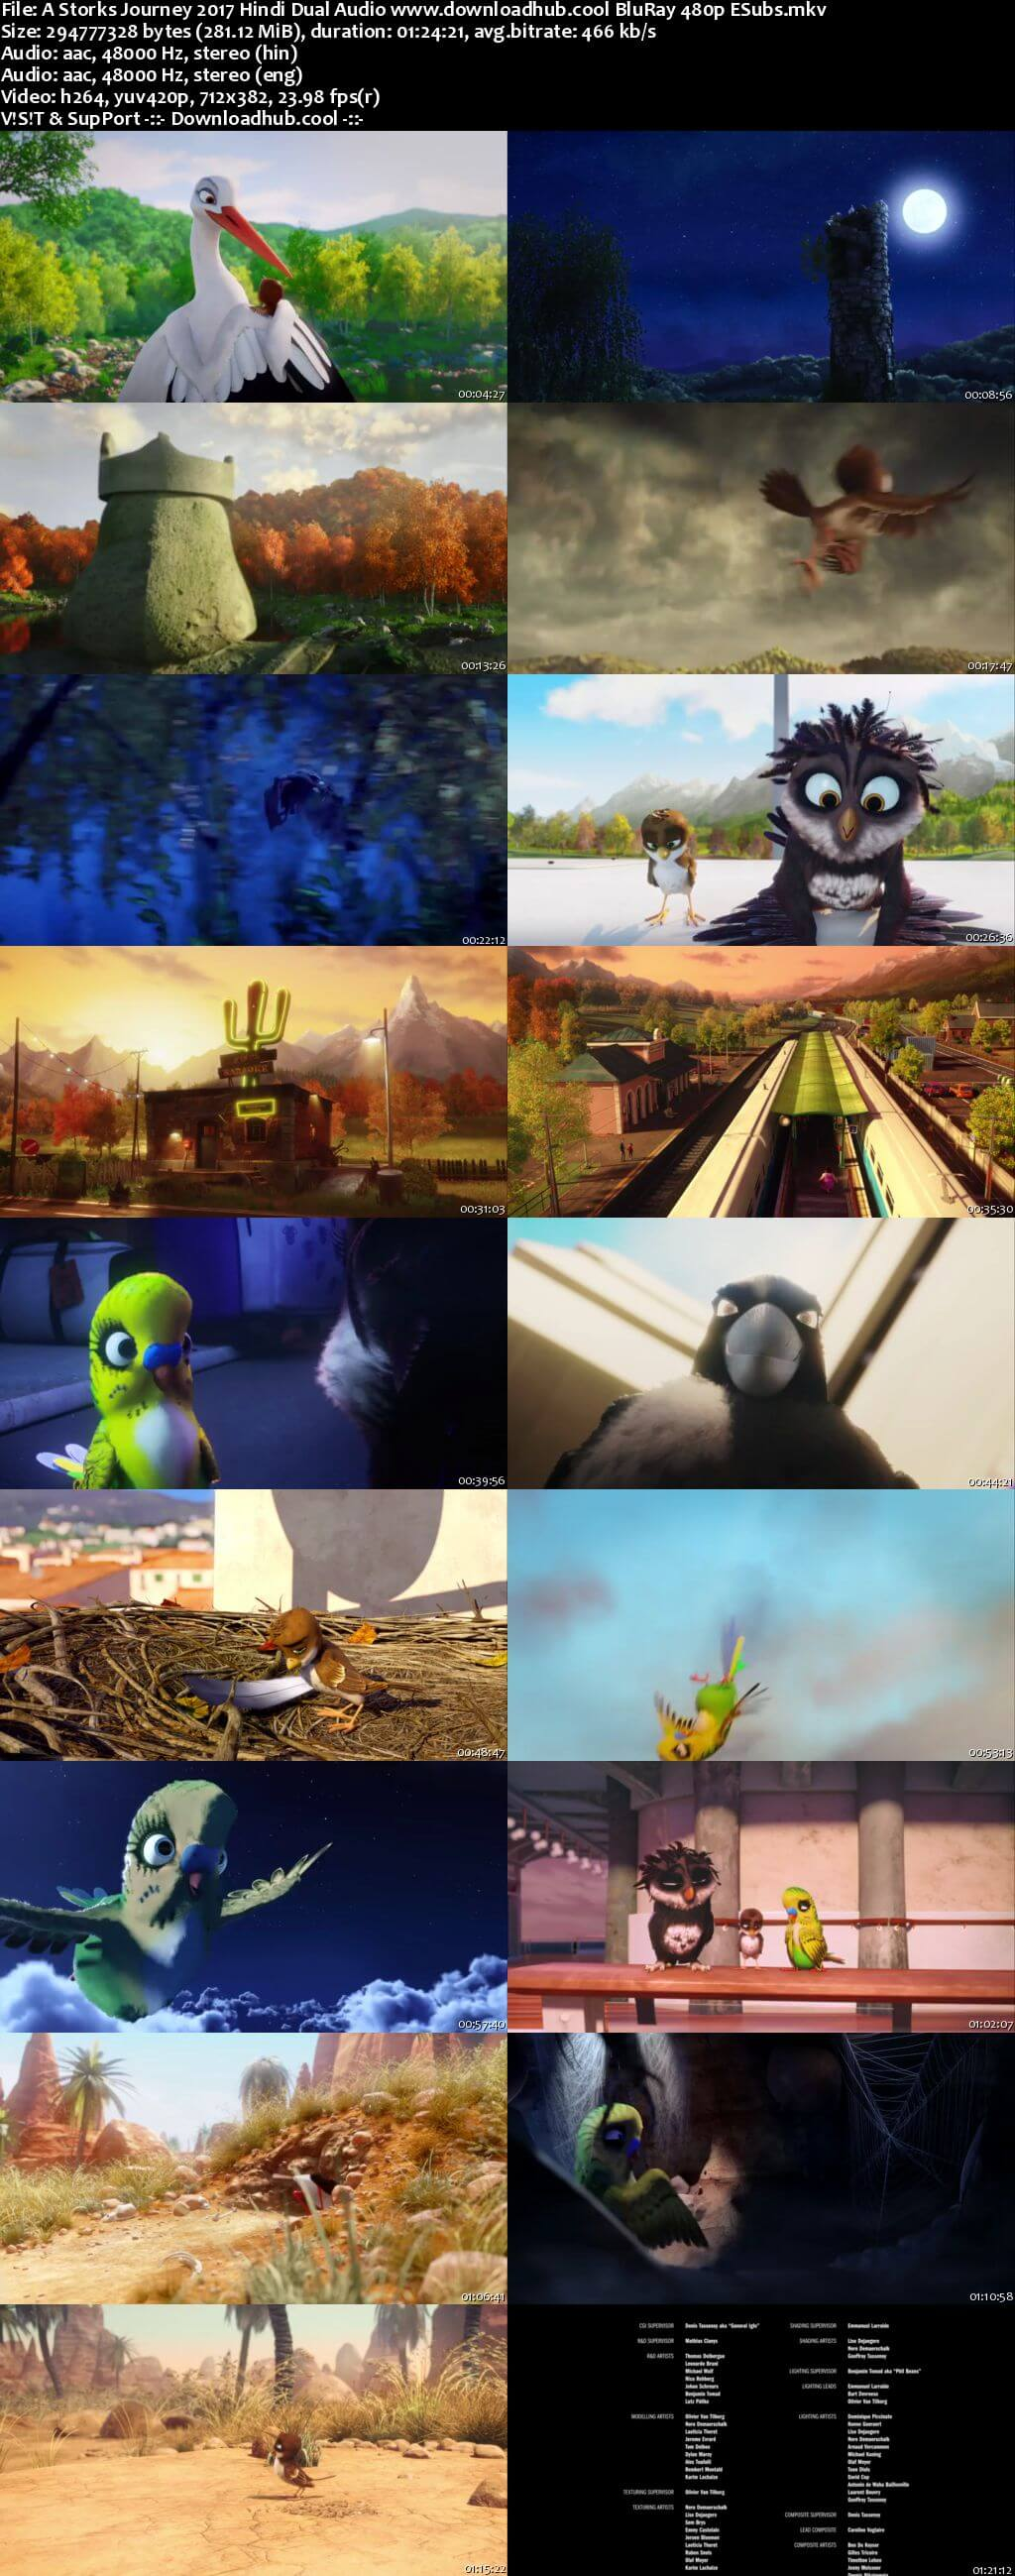 A Storks Journey 2017 Hindi Dual Audio 280MB BluRay 480p ESubs